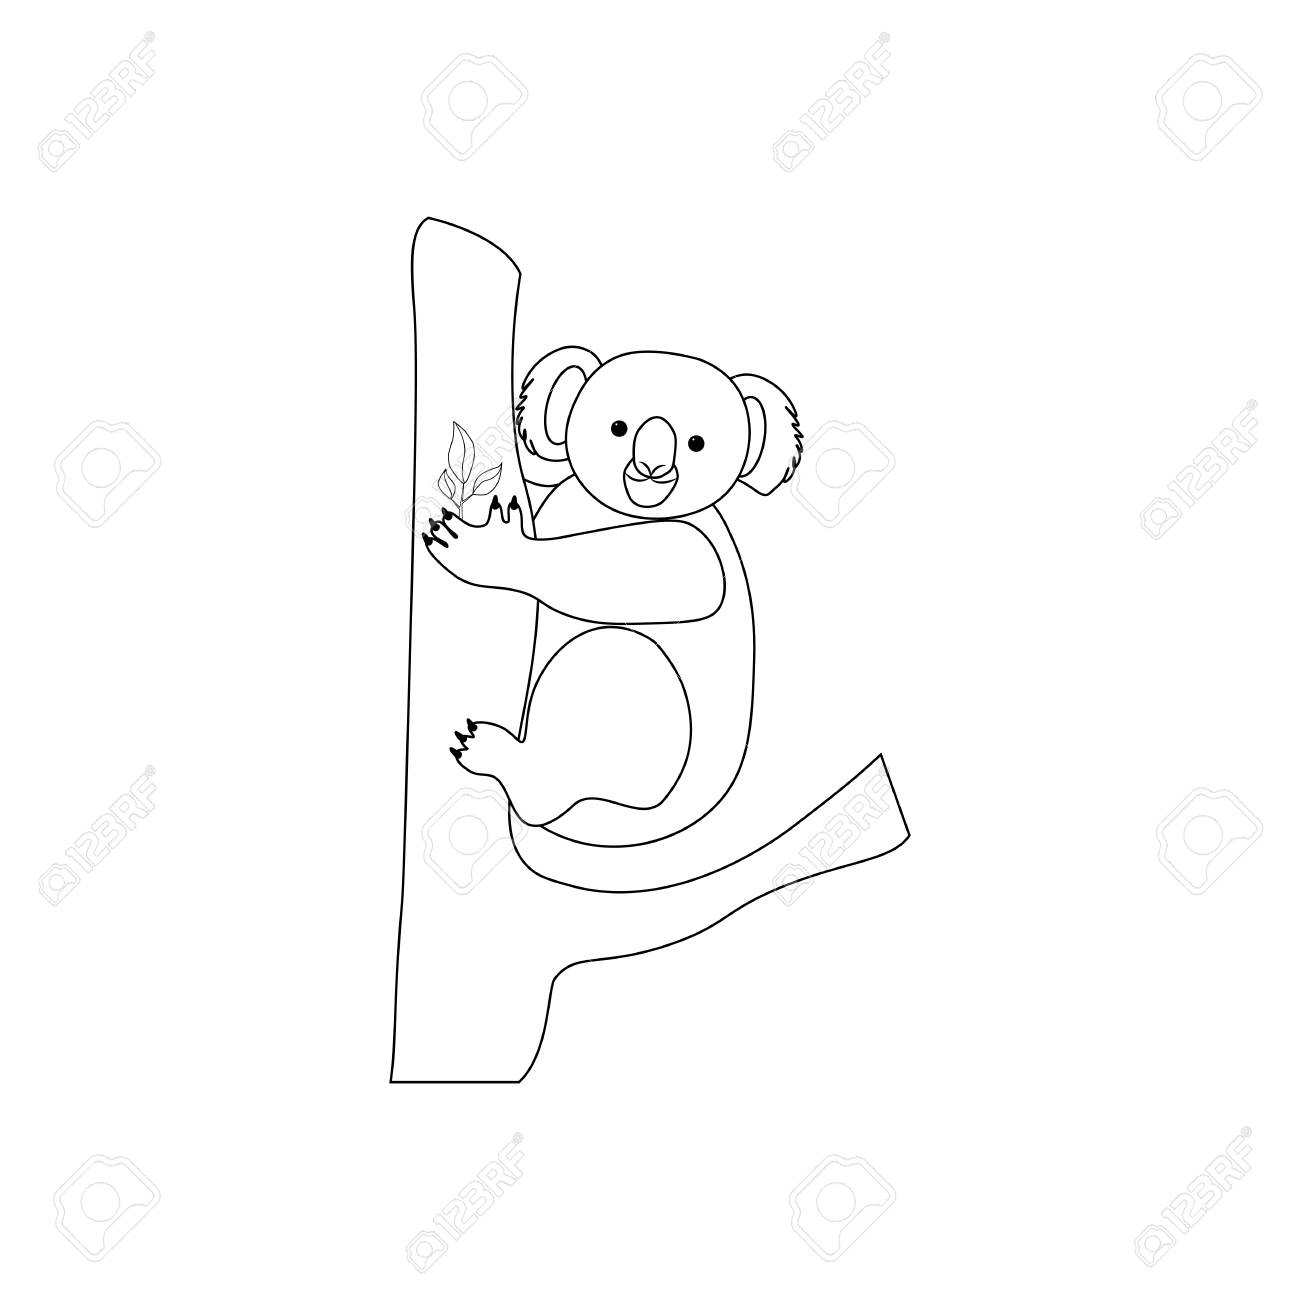 Koala Bear Coloring Pages On The White Background Vector